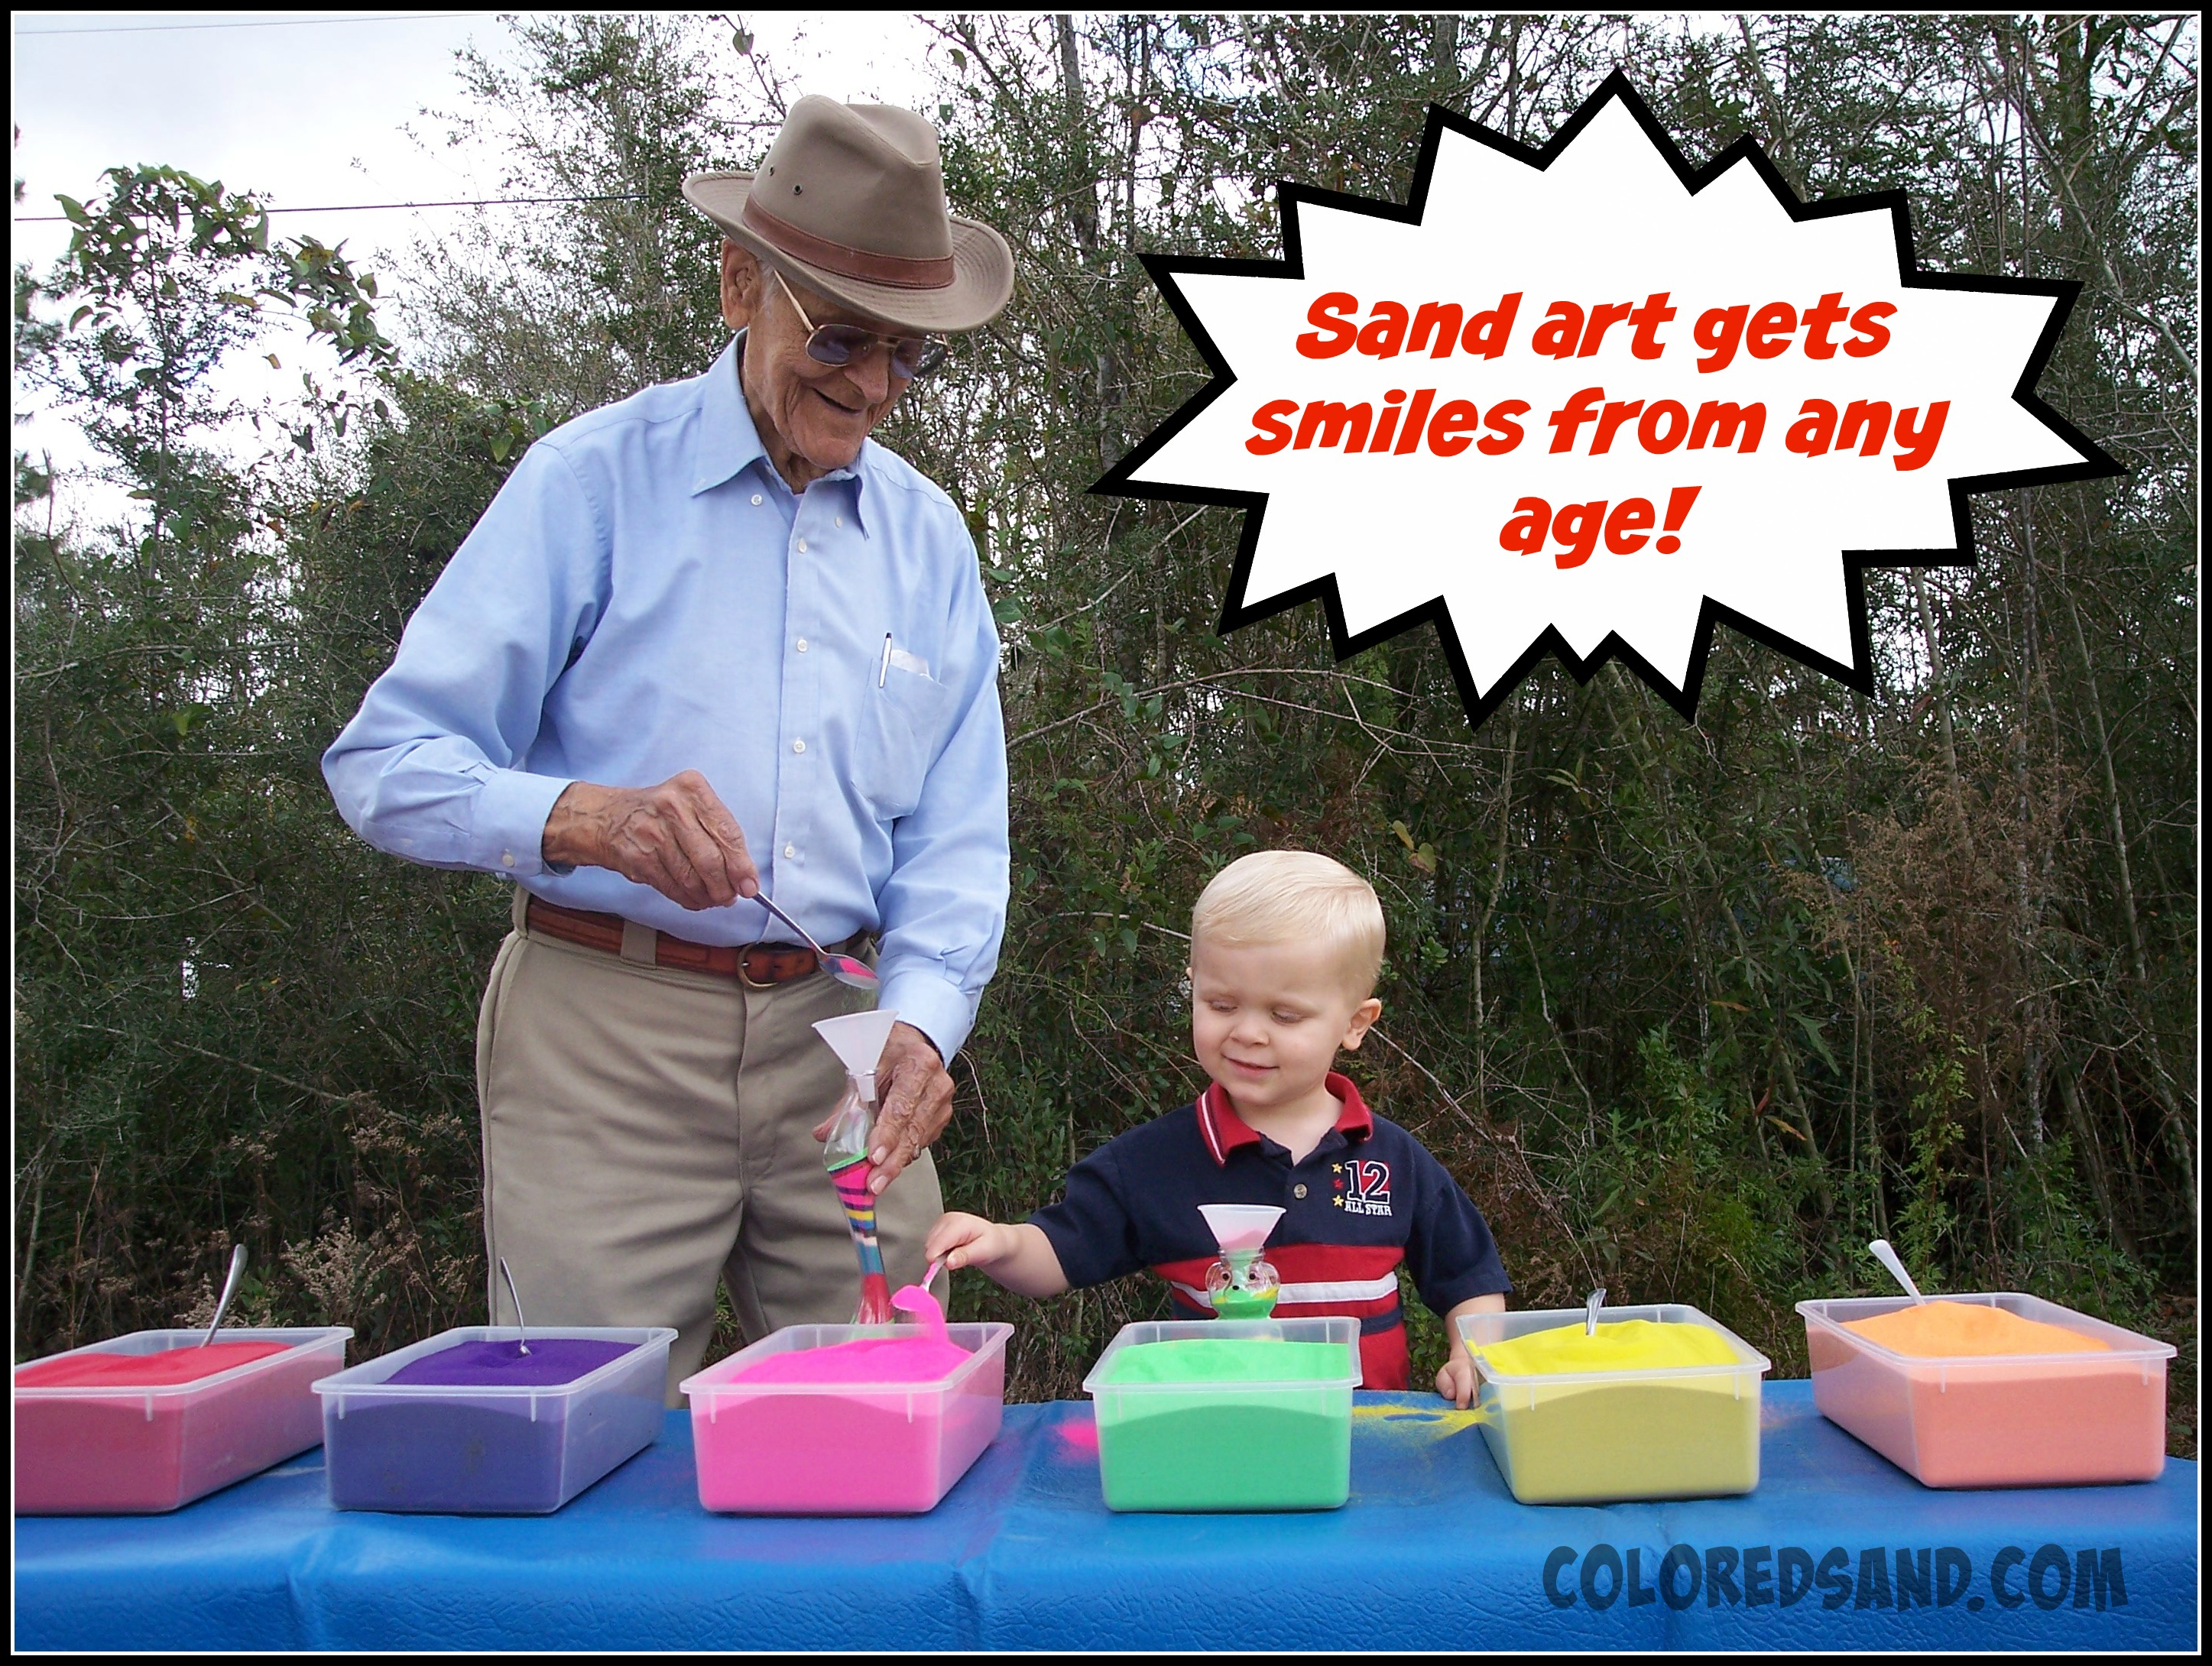 sand art is for the young and old